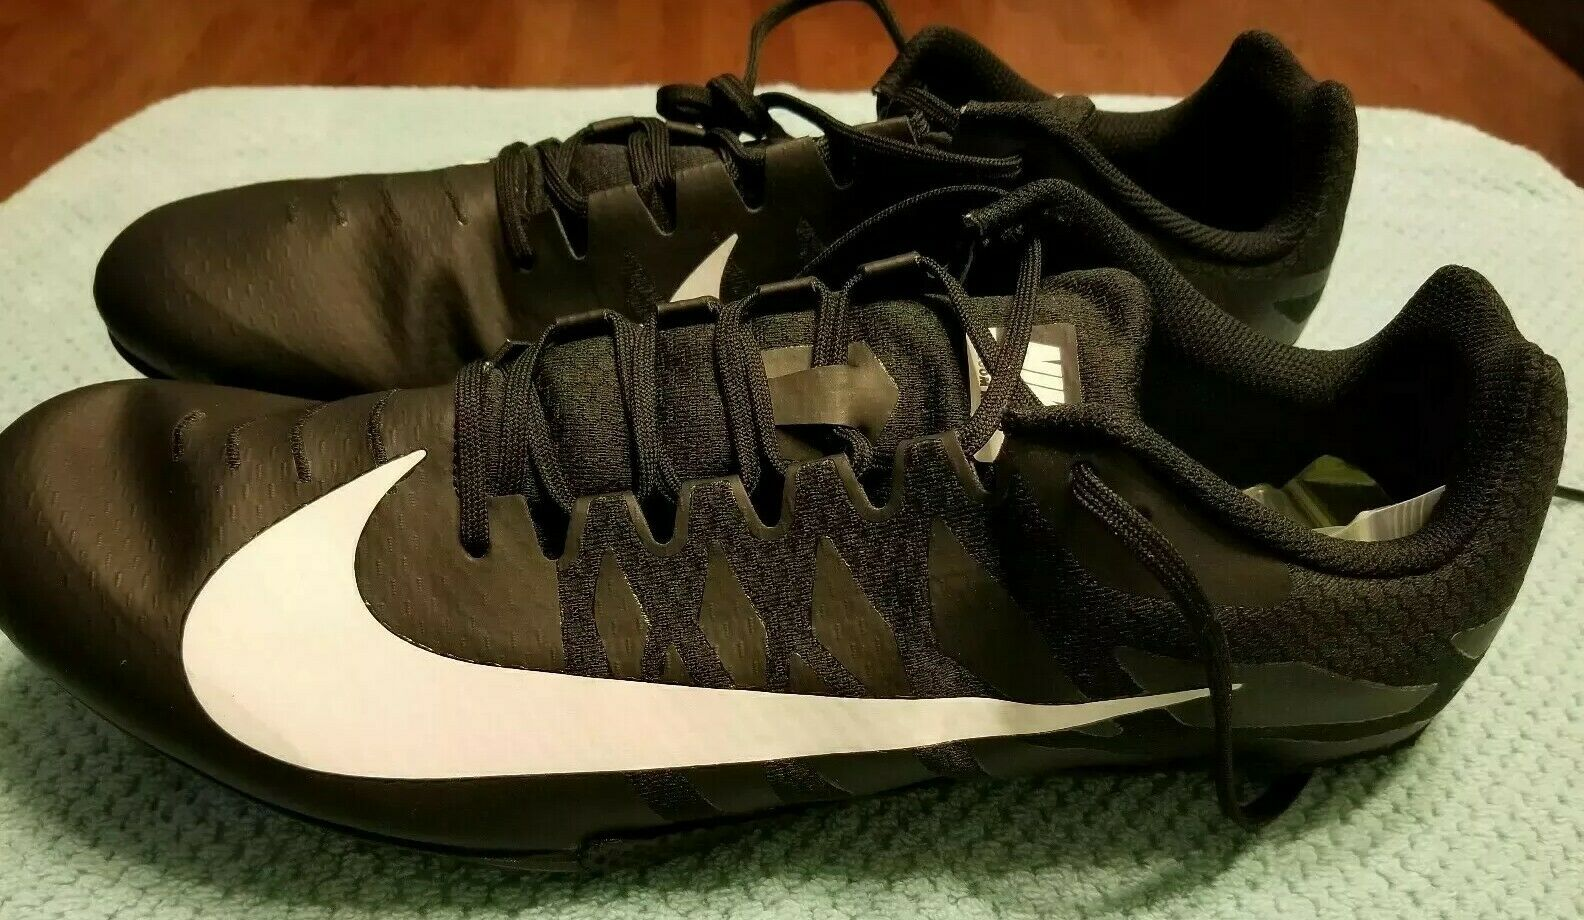 Nike Zoom Rival S 9 Track Sprint Spikes 907564-001 Blk white Size 15 new